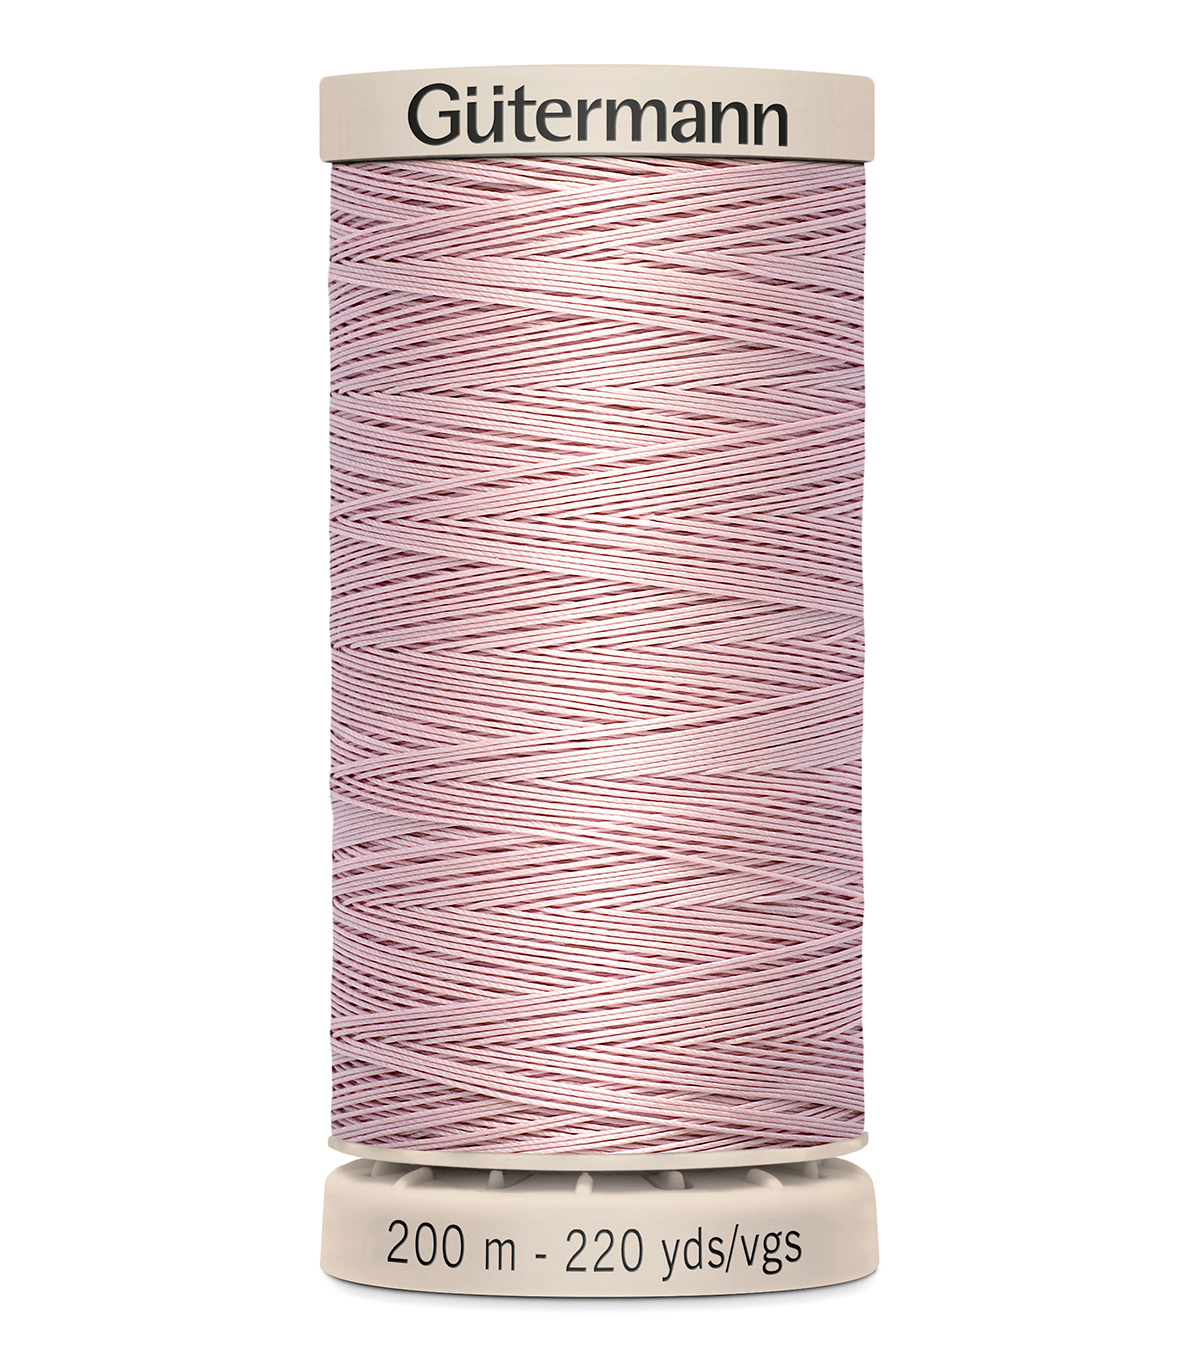 Gutermann Hand Quilting Thread 200 Meters (220 Yrds)-Primary, Wing Tip #3117